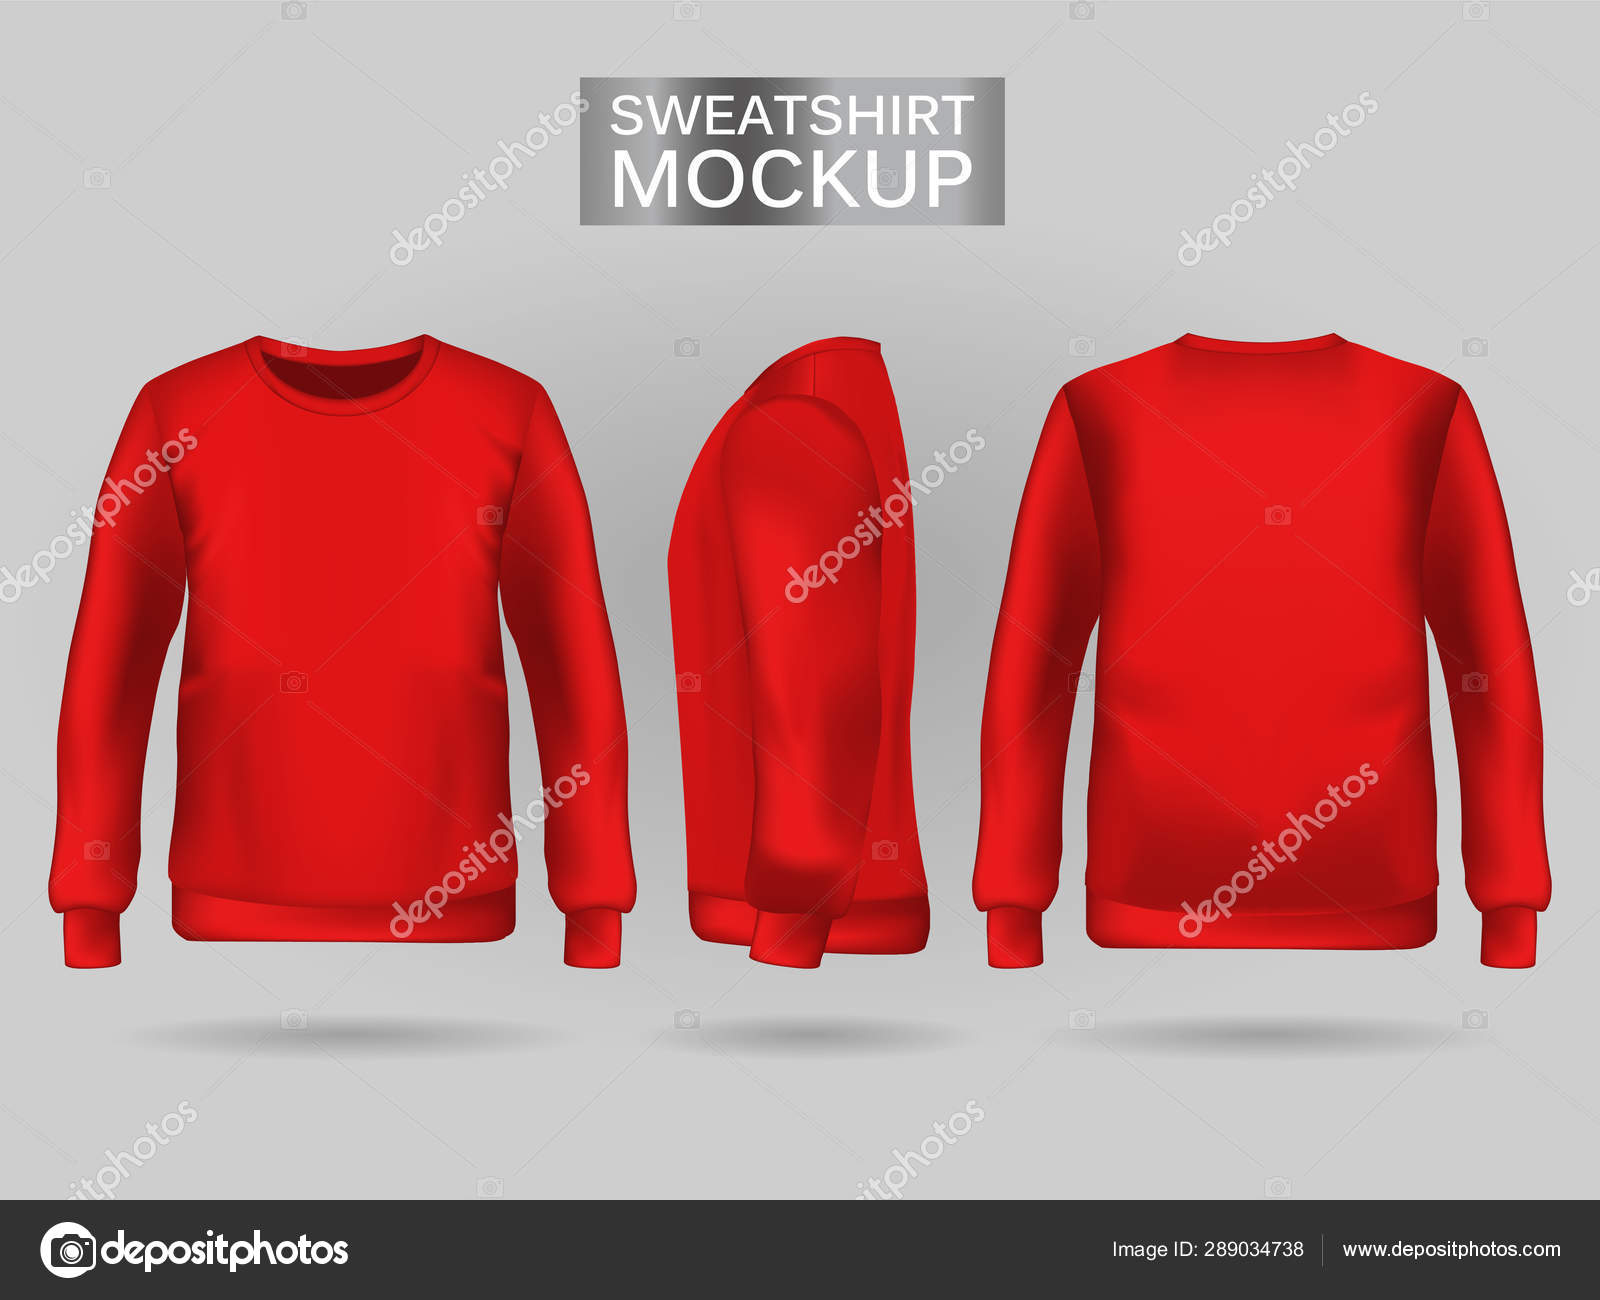 Blank Mens Red Sweatshirt In Front Back And Side Views Realistic Female Clothes For Sport And Urban Style Stock Vector C Kololo15 289034738 Shop red hoodies created by independent artists from around the globe. blank mens red sweatshirt in front back and side views realistic female clothes for sport and urban style stock vector c kololo15 289034738